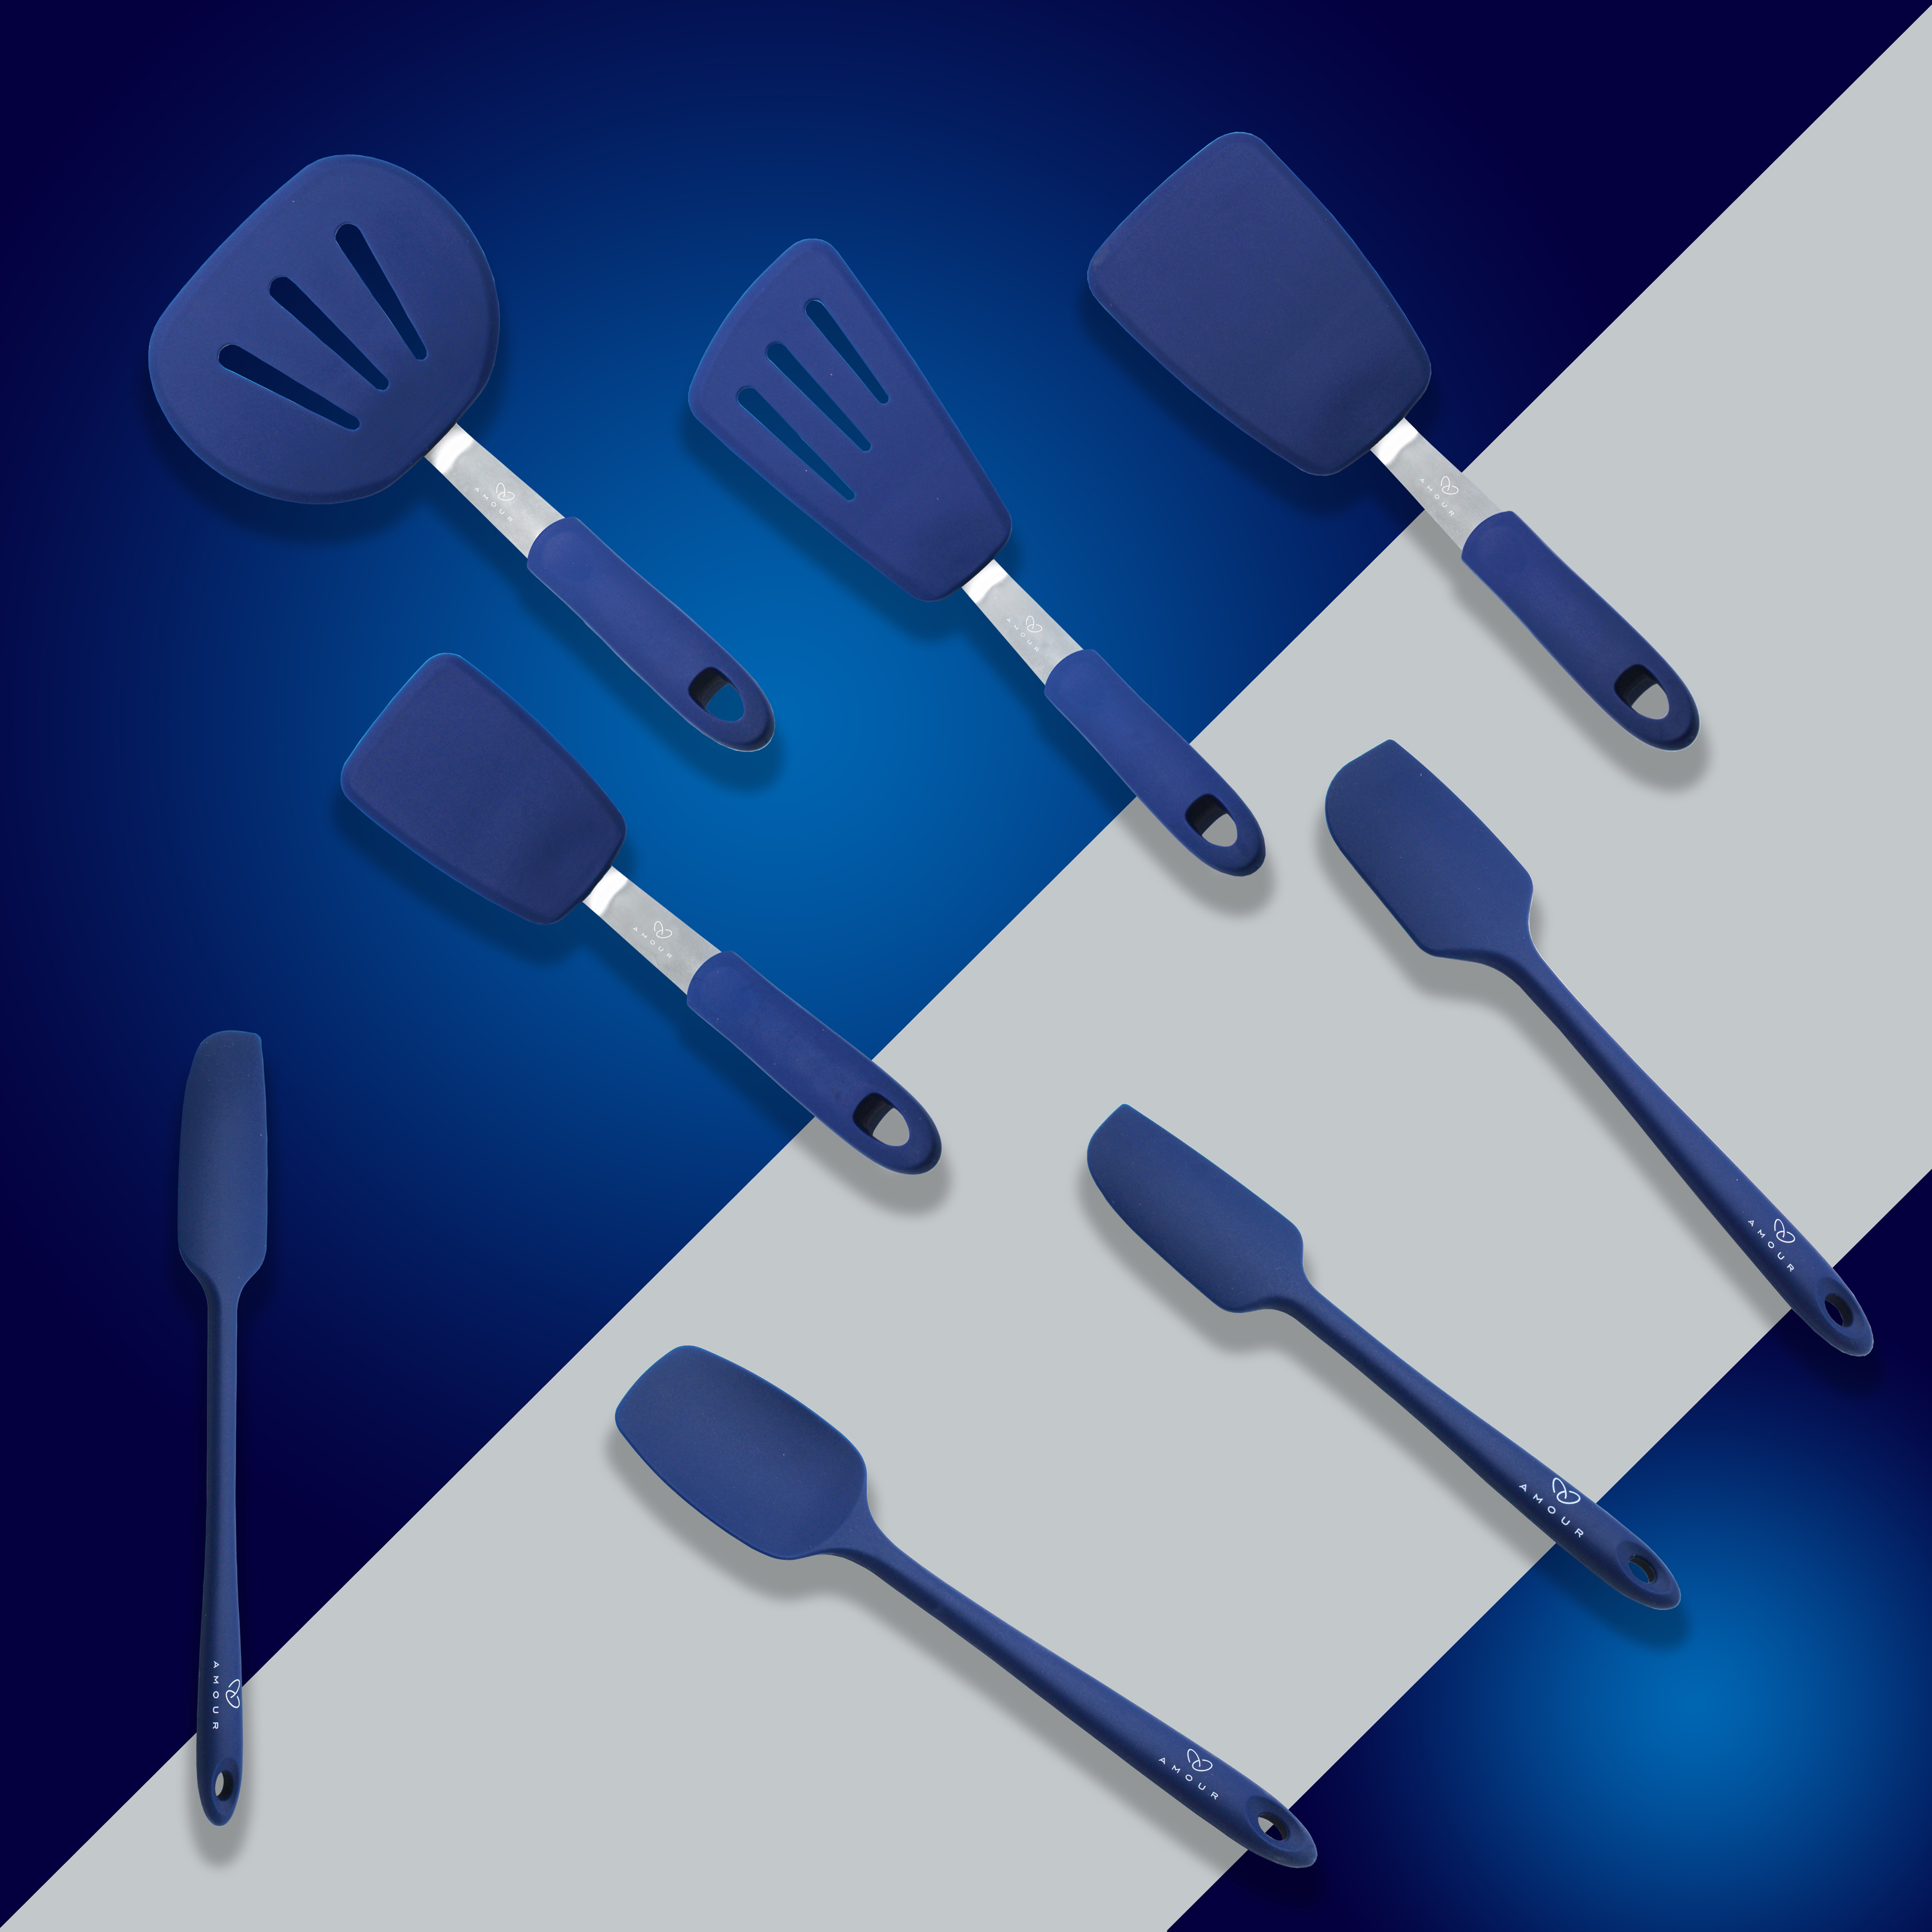 Amour | Amour Silicone Spatula Set - 8-piece 450oF Heat-Resistant Baking Spoon & Spatulas - Ergonomic Easy-to-Clean Seamless One-Piece Design - Nonstick - Dishwasher Safe - (Blue)